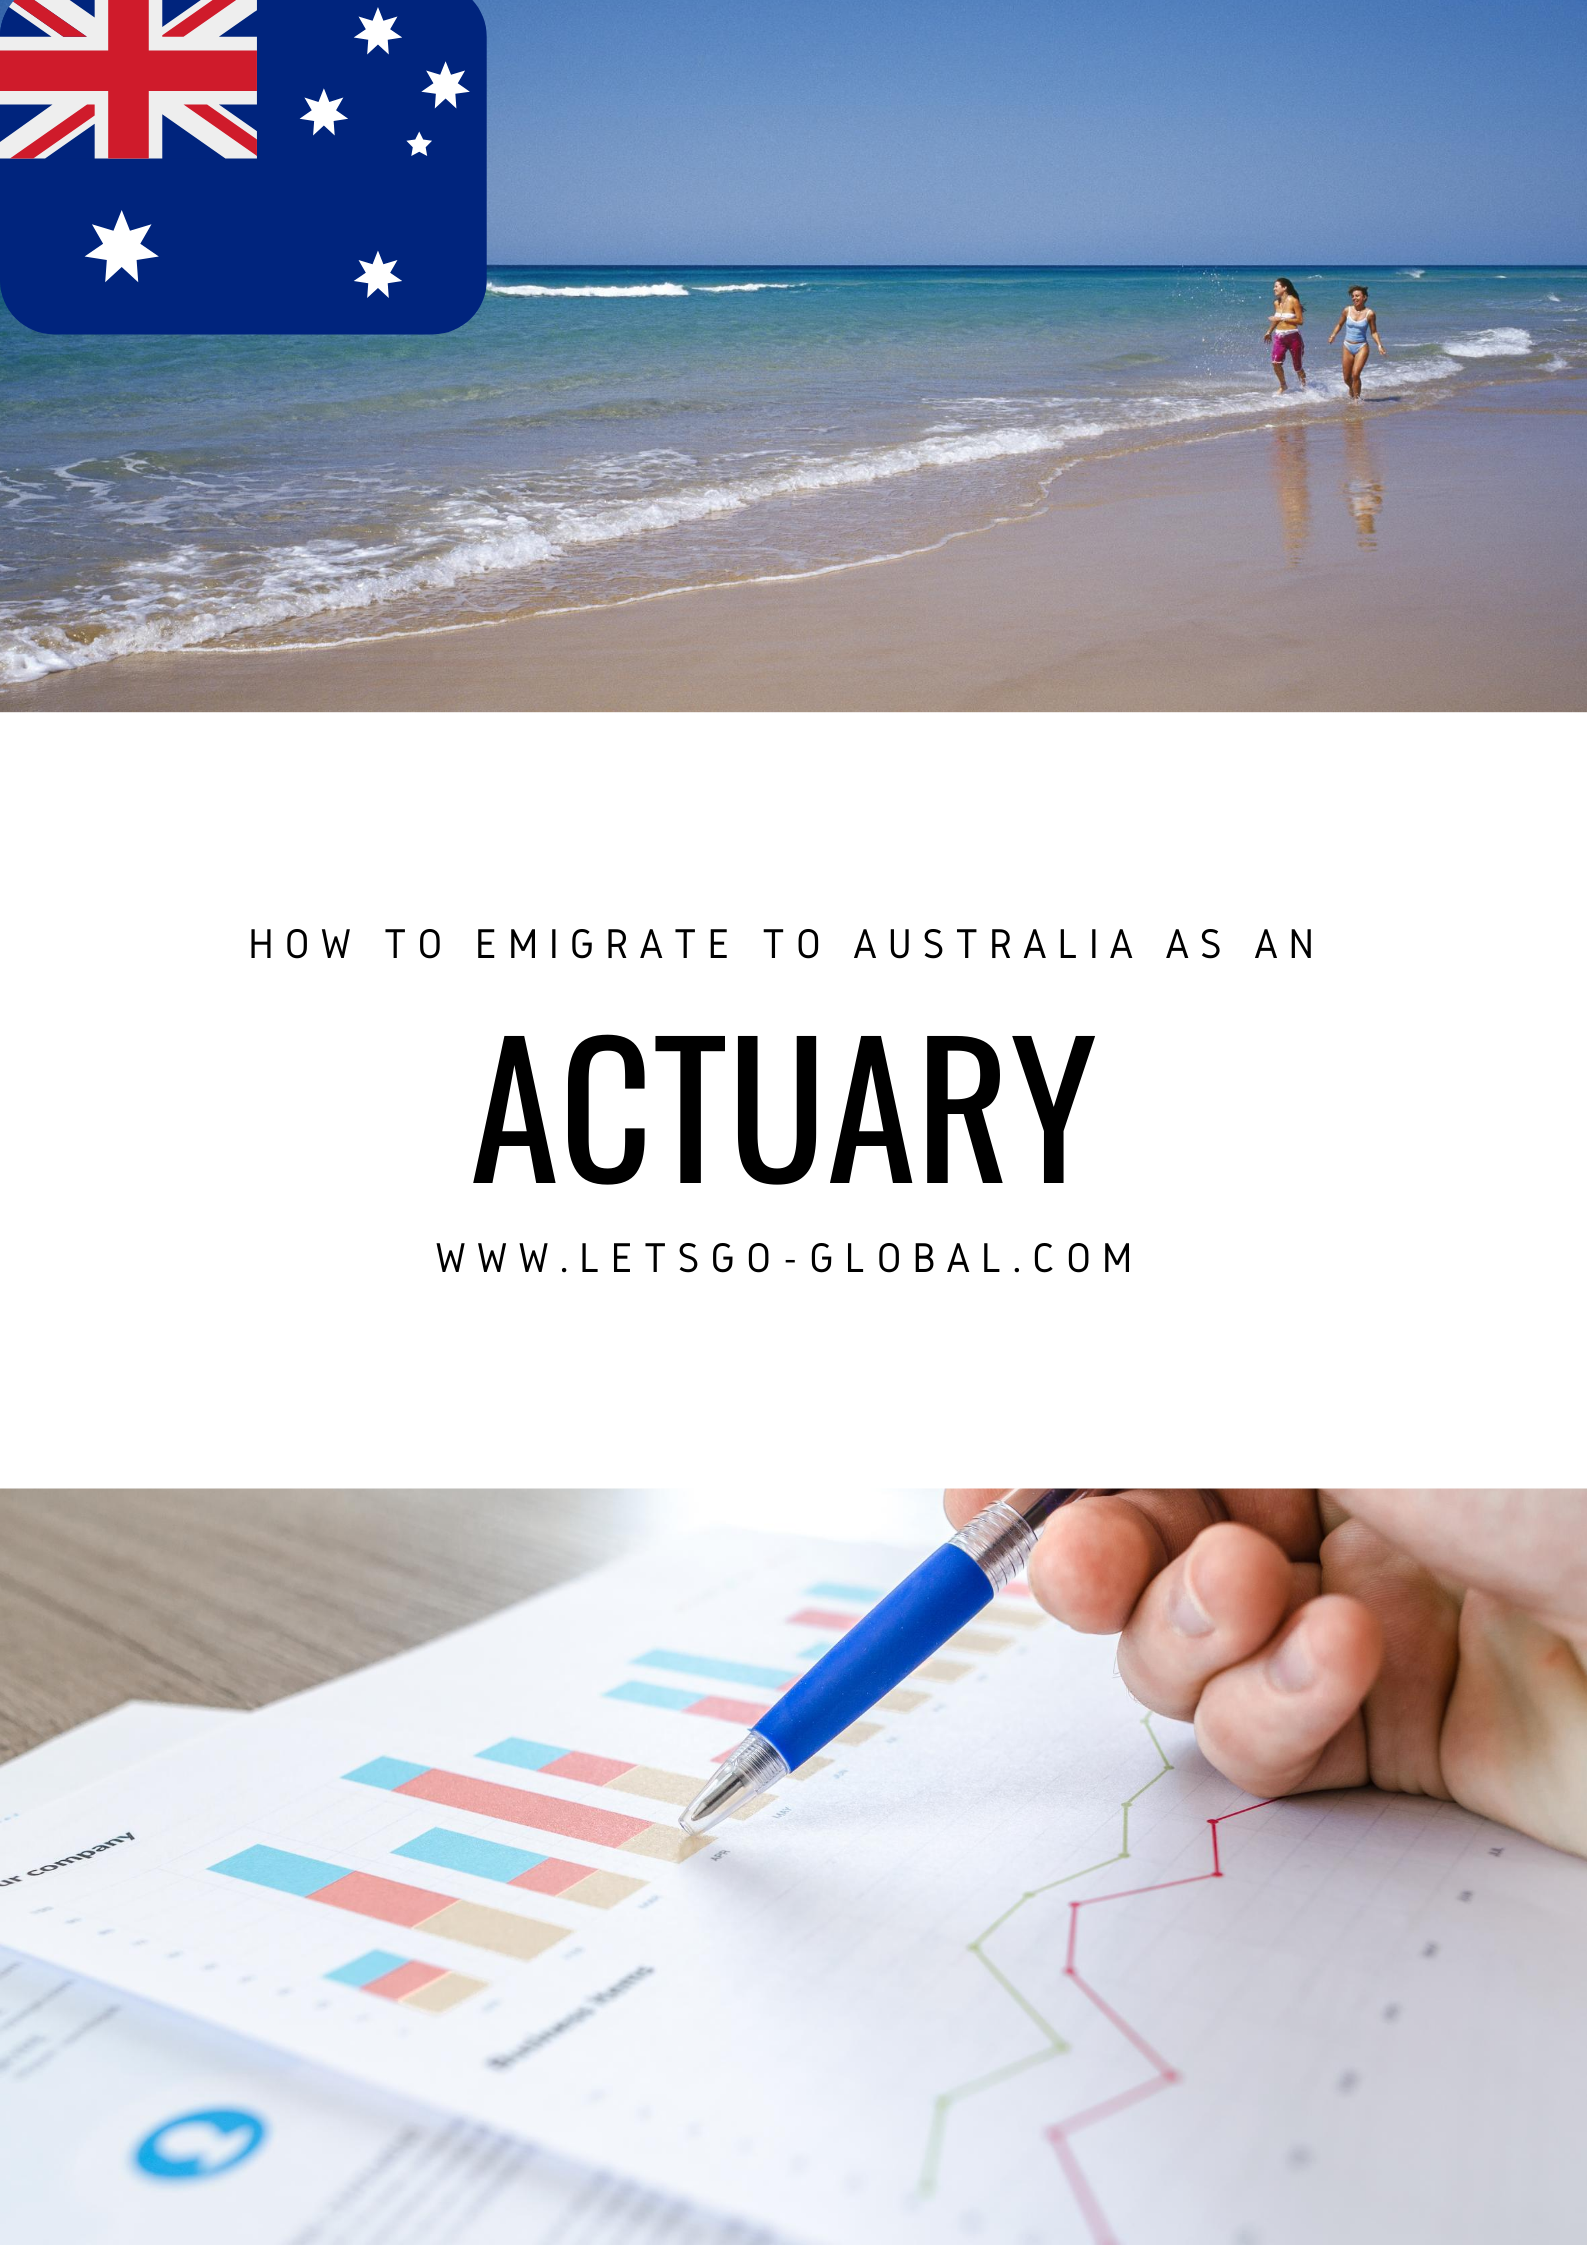 Migrate to Australia as an Actuary